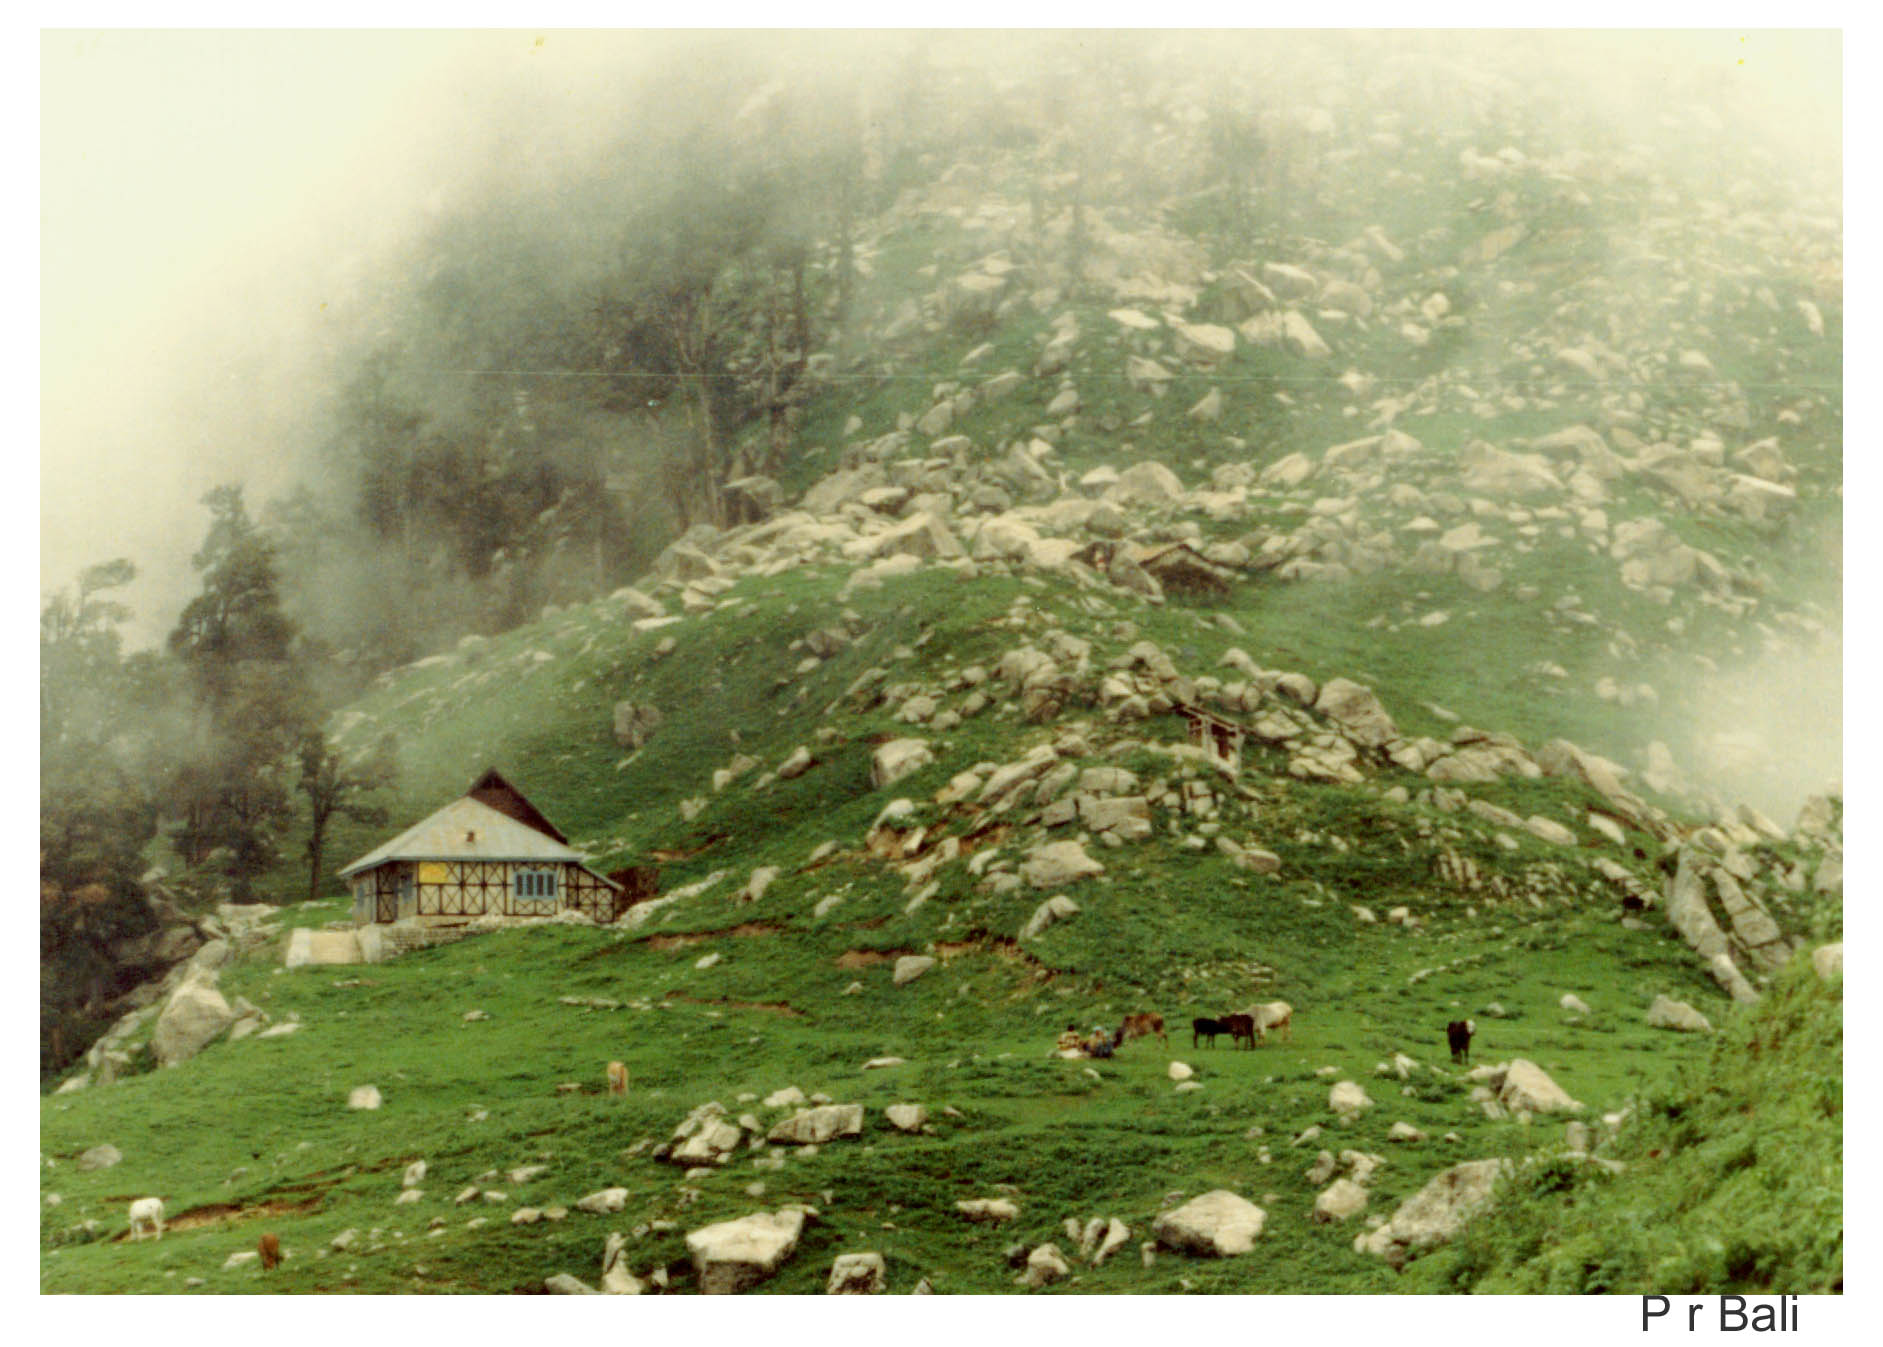 Triund Dhauladhar hills Kangra valley 9325 ft image P r Bali